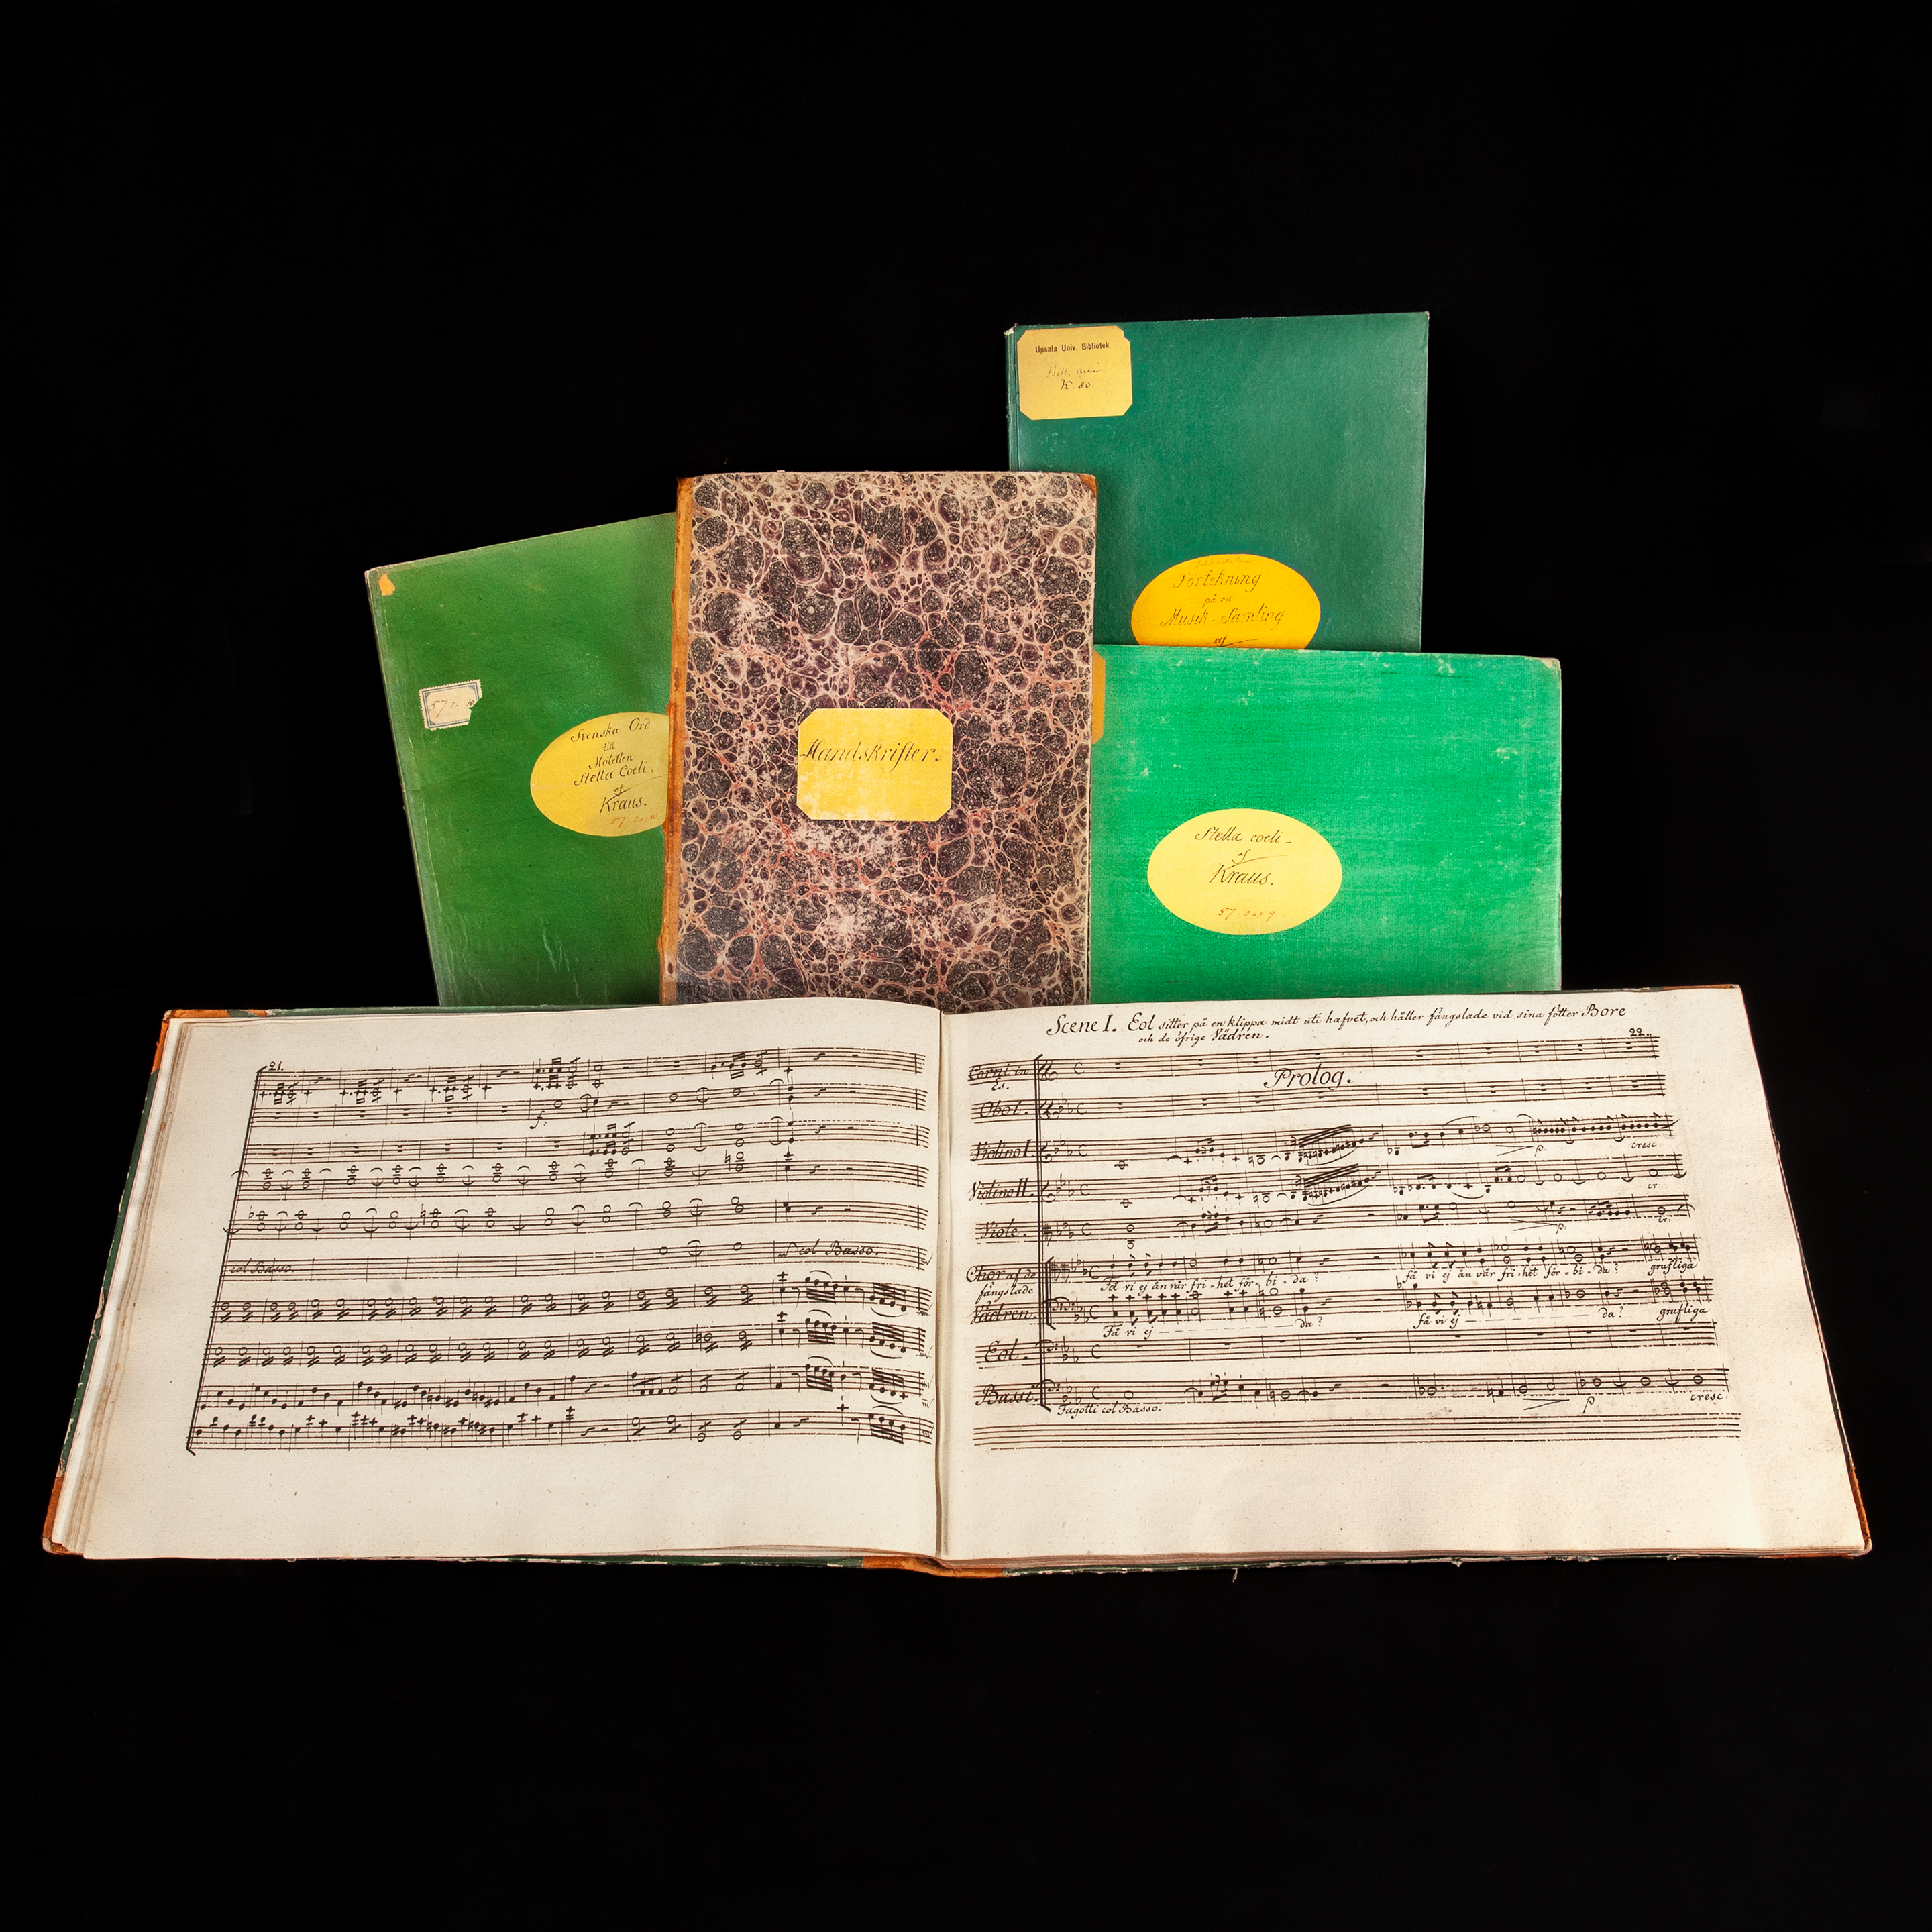 manuscripts and music scores in bright green or marbled bindings